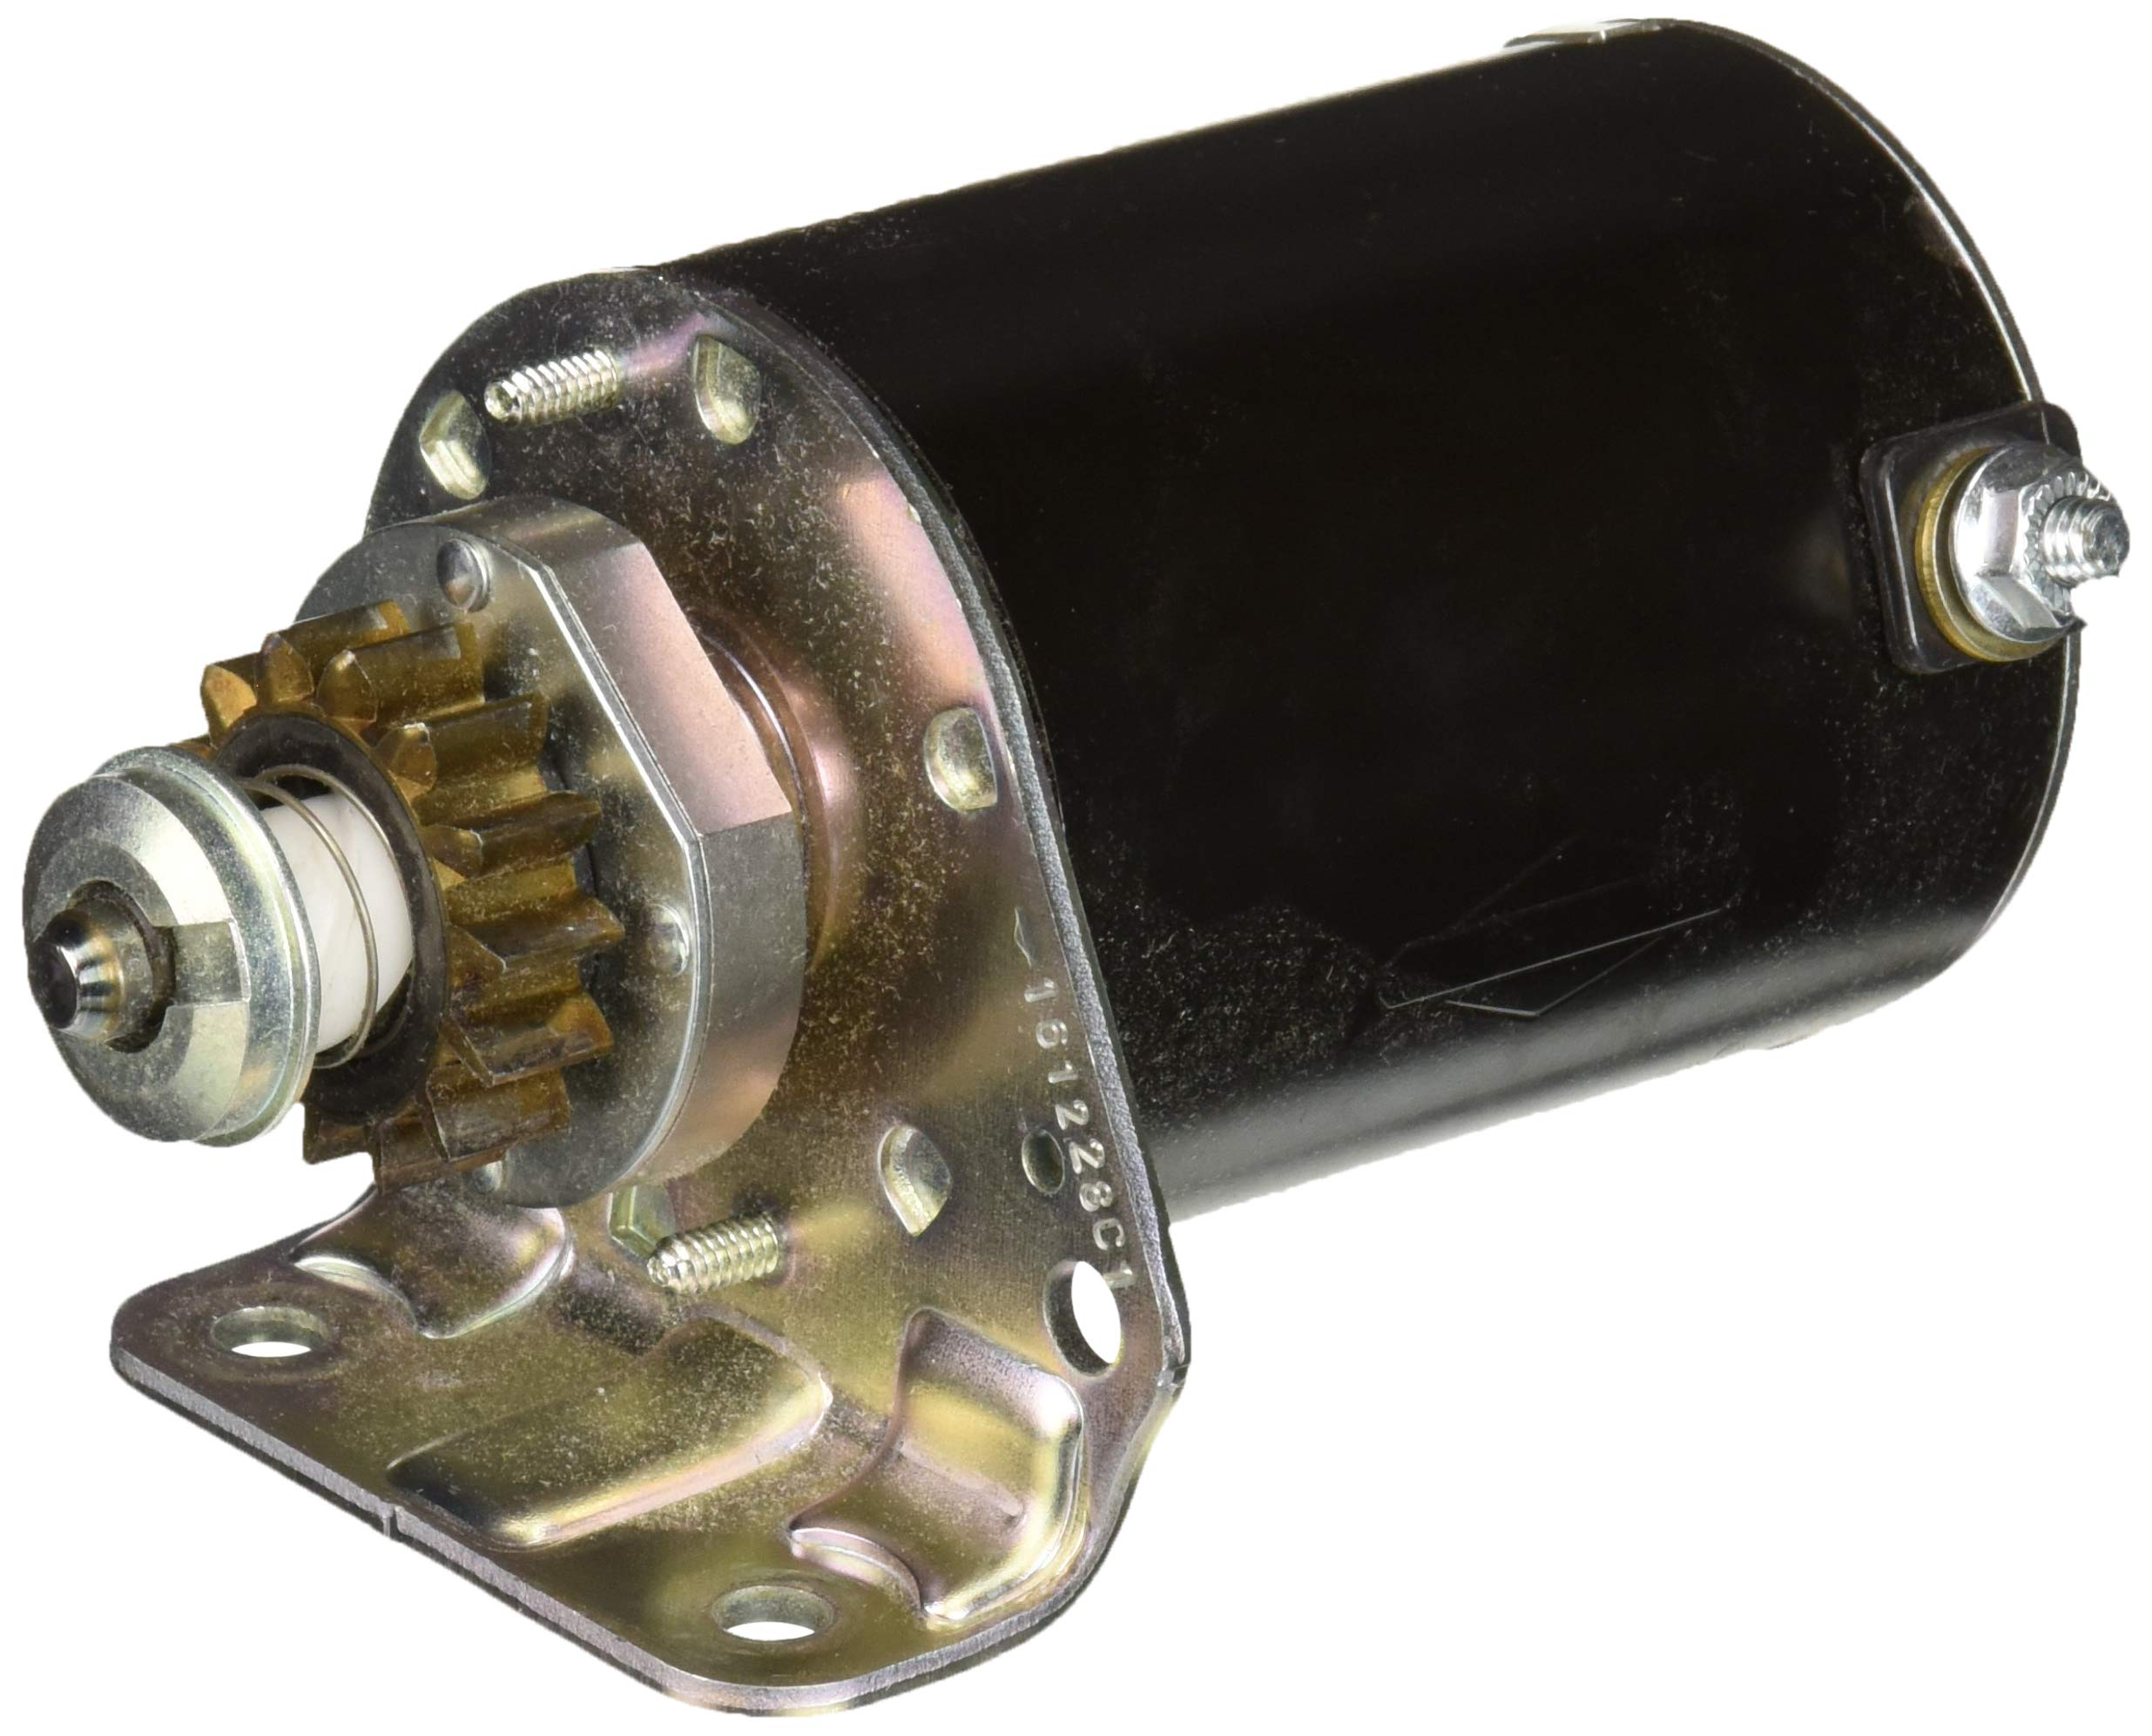 Briggs and Stratton 593934 Electric Starter Motor by Briggs & Stratton